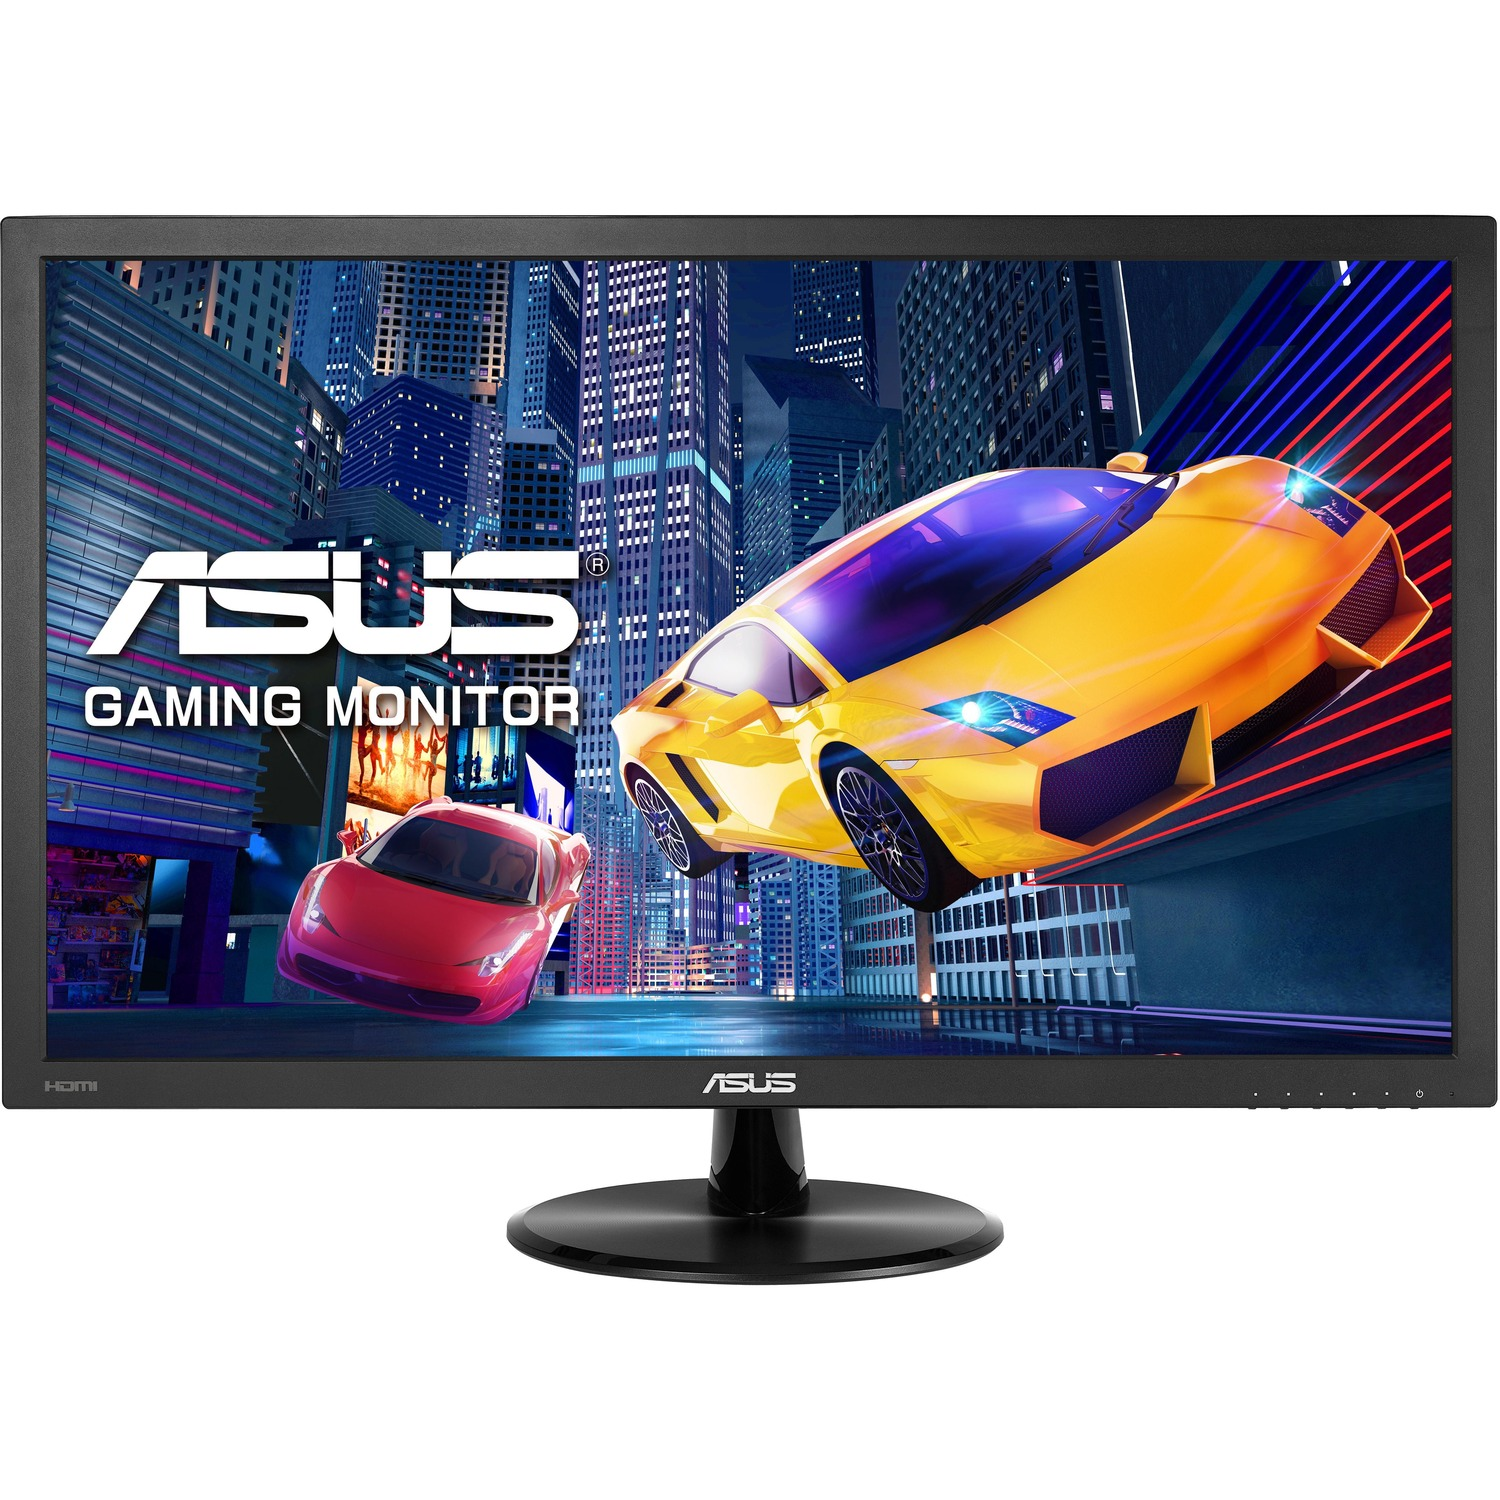 Asus VP228HE 21.5inch LED LCD Monitor - 16:9 - 1 ms